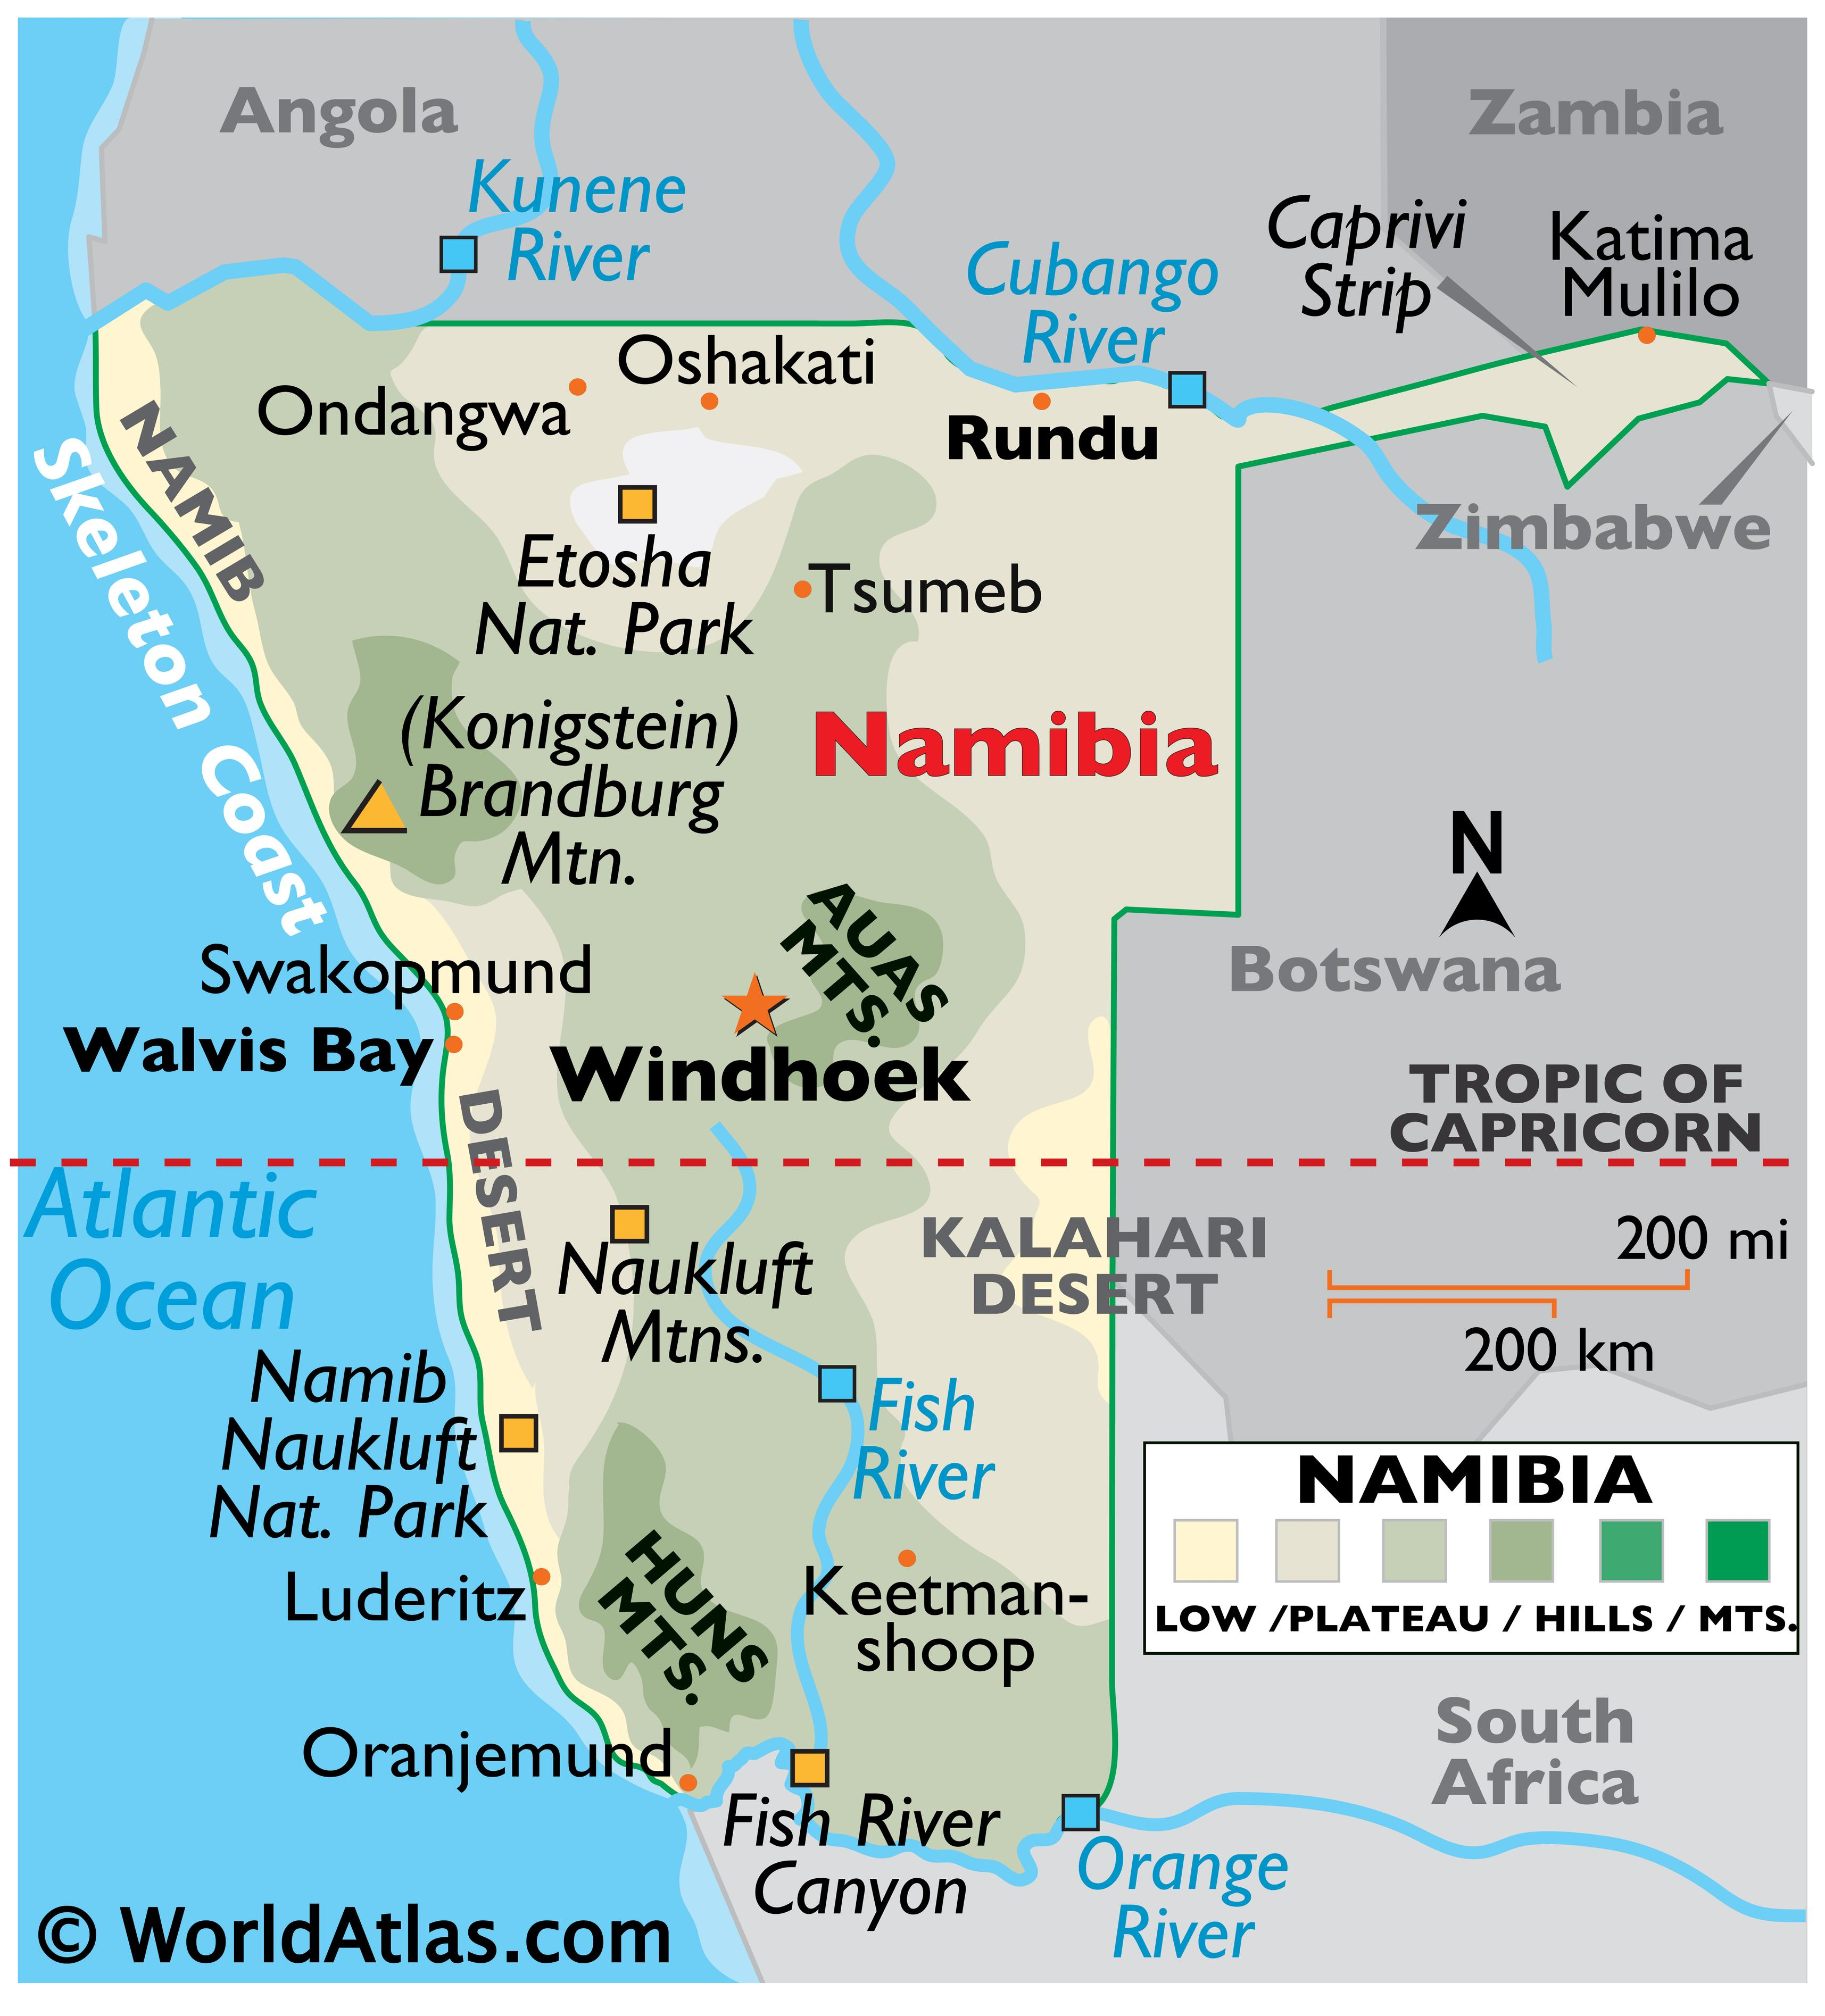 Physical Map of Namibia showing the relief of the country and major physical features like deserts, mountains, rivers, relative location of major cities, and more.